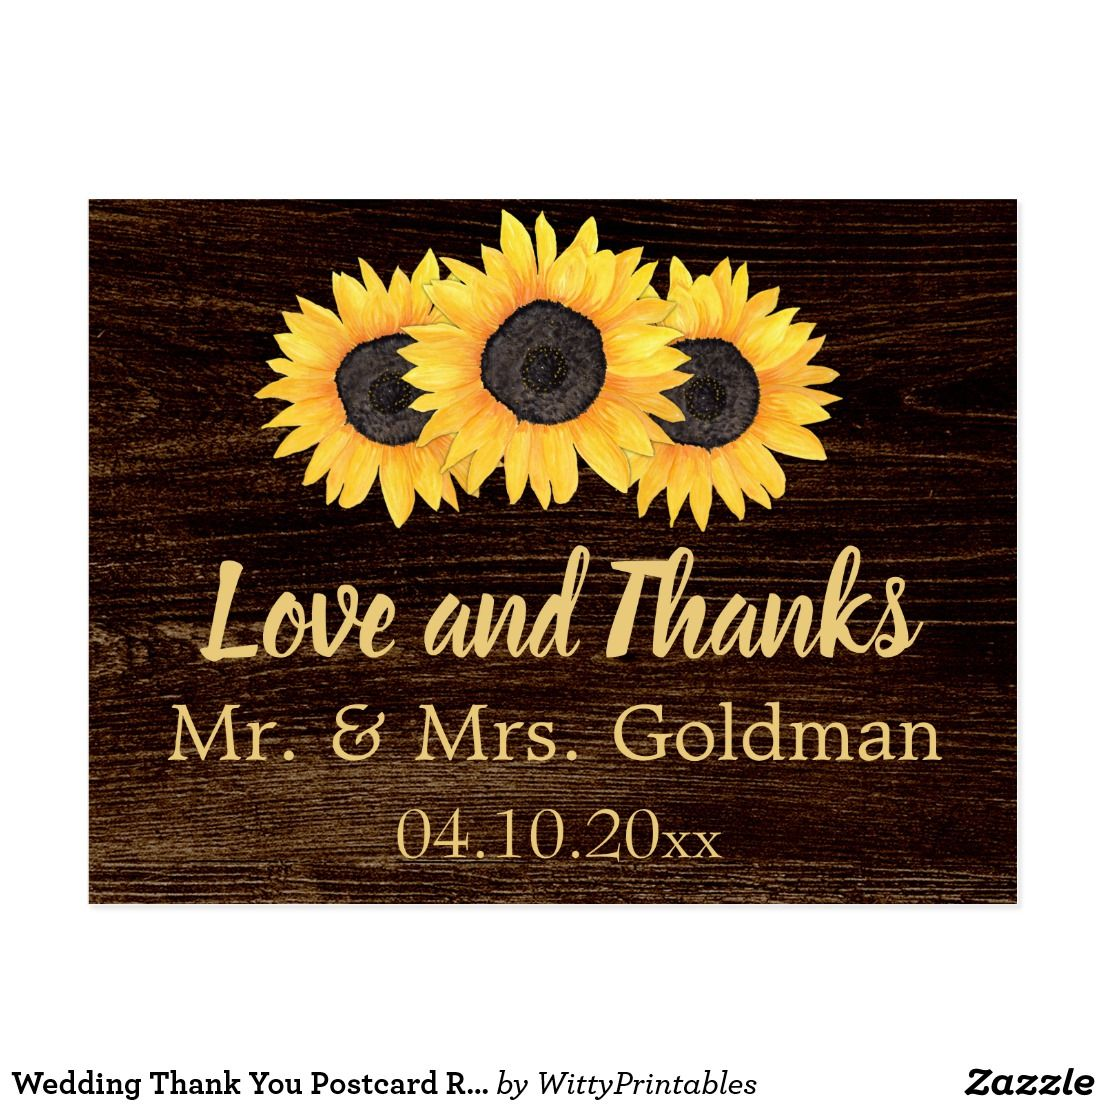 wedding reception directions card%0A Wedding Thank You Postcard Rustic Sunflowers Wood